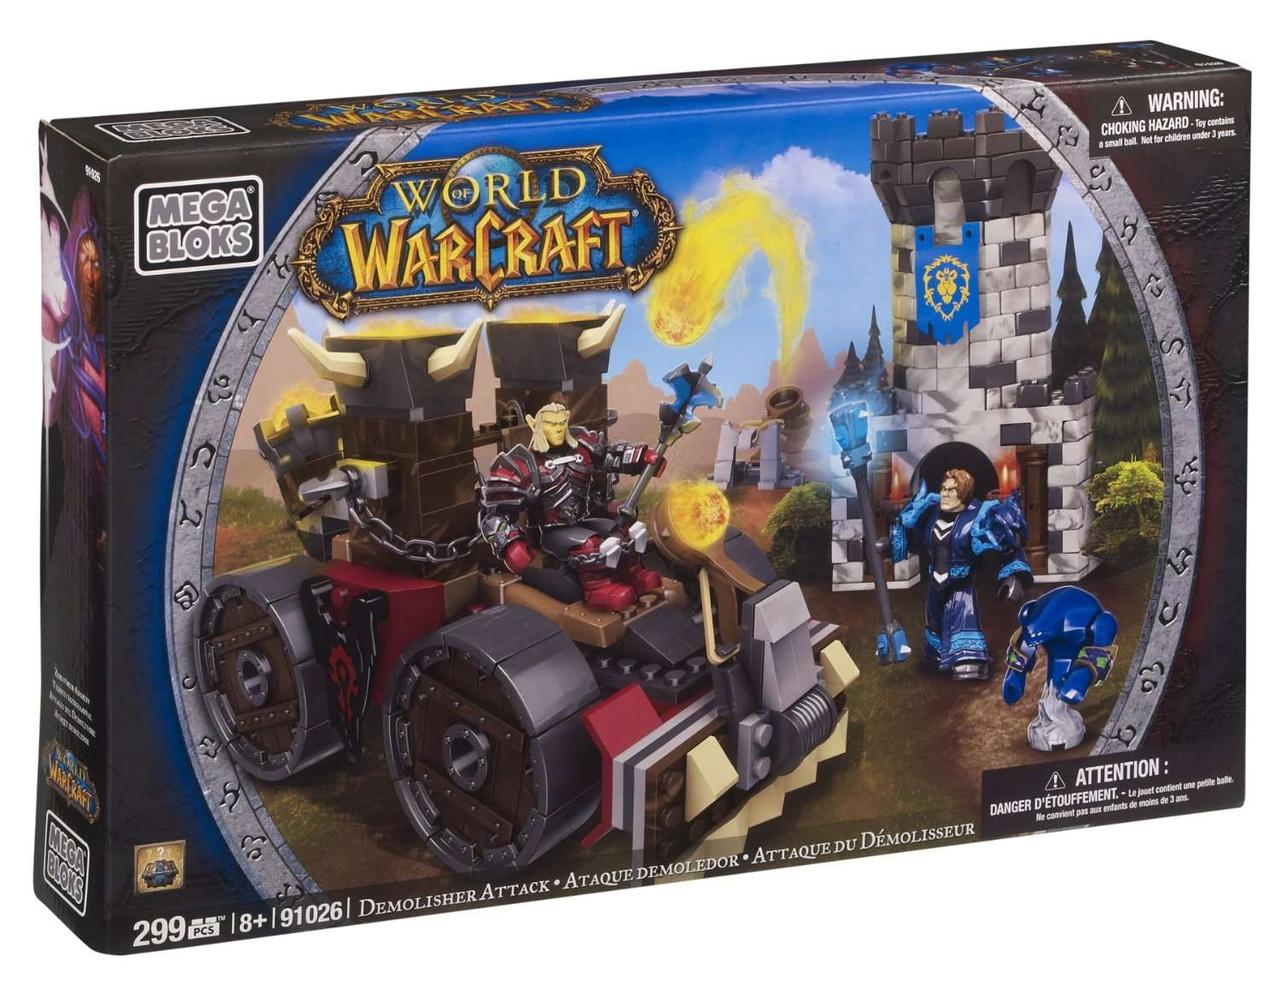 "Конструктор World of Warcraft Осада. Машина для атаки, Mega Bloks, варкрафт мега блокс, мегаблокс (299 дет.) - ""Toyexpress"" в Днепре"